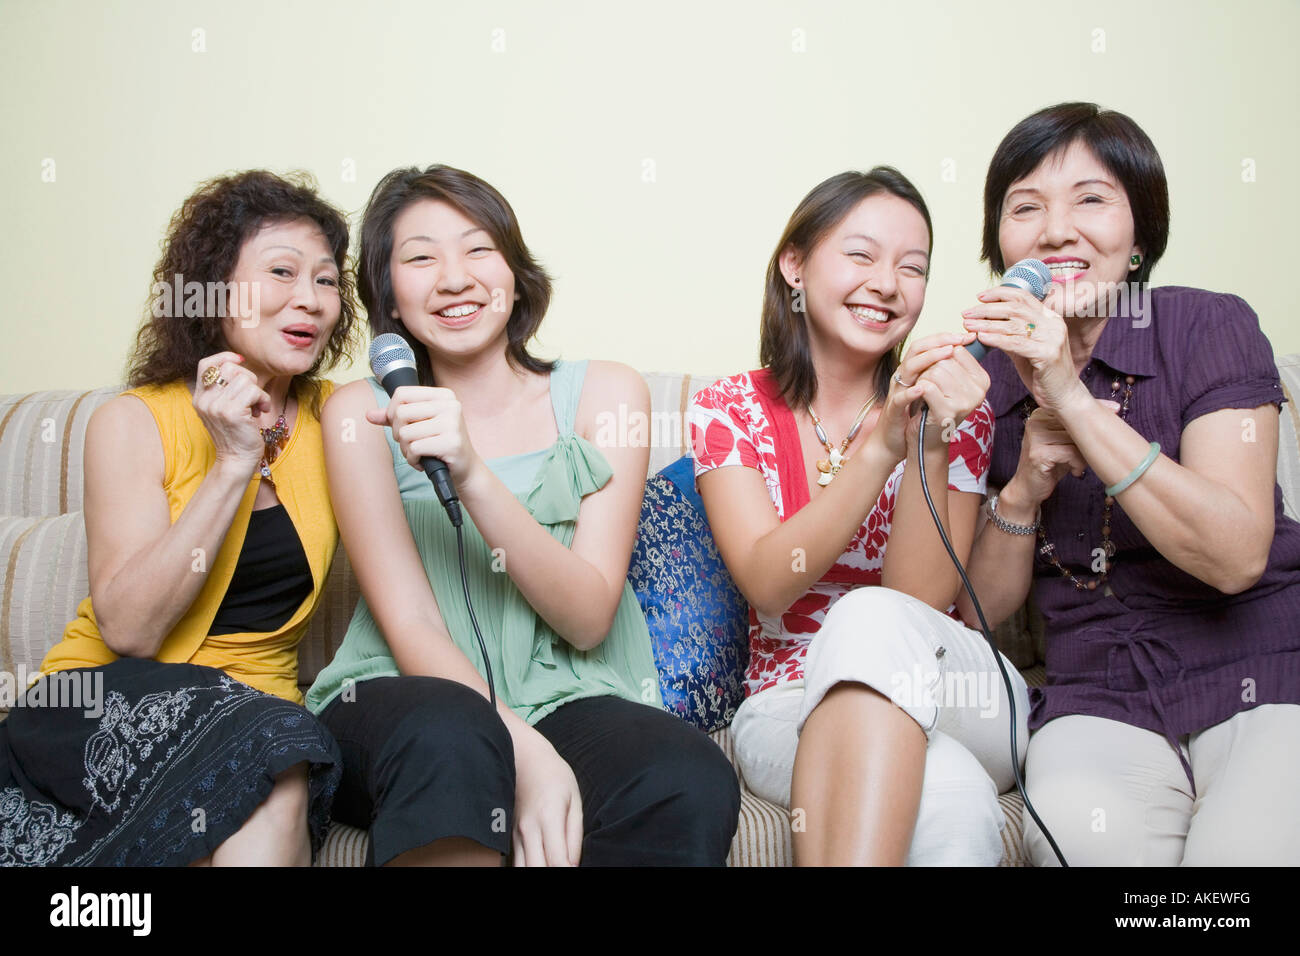 Two young women singing with their grandmothers into microphones - Stock Image